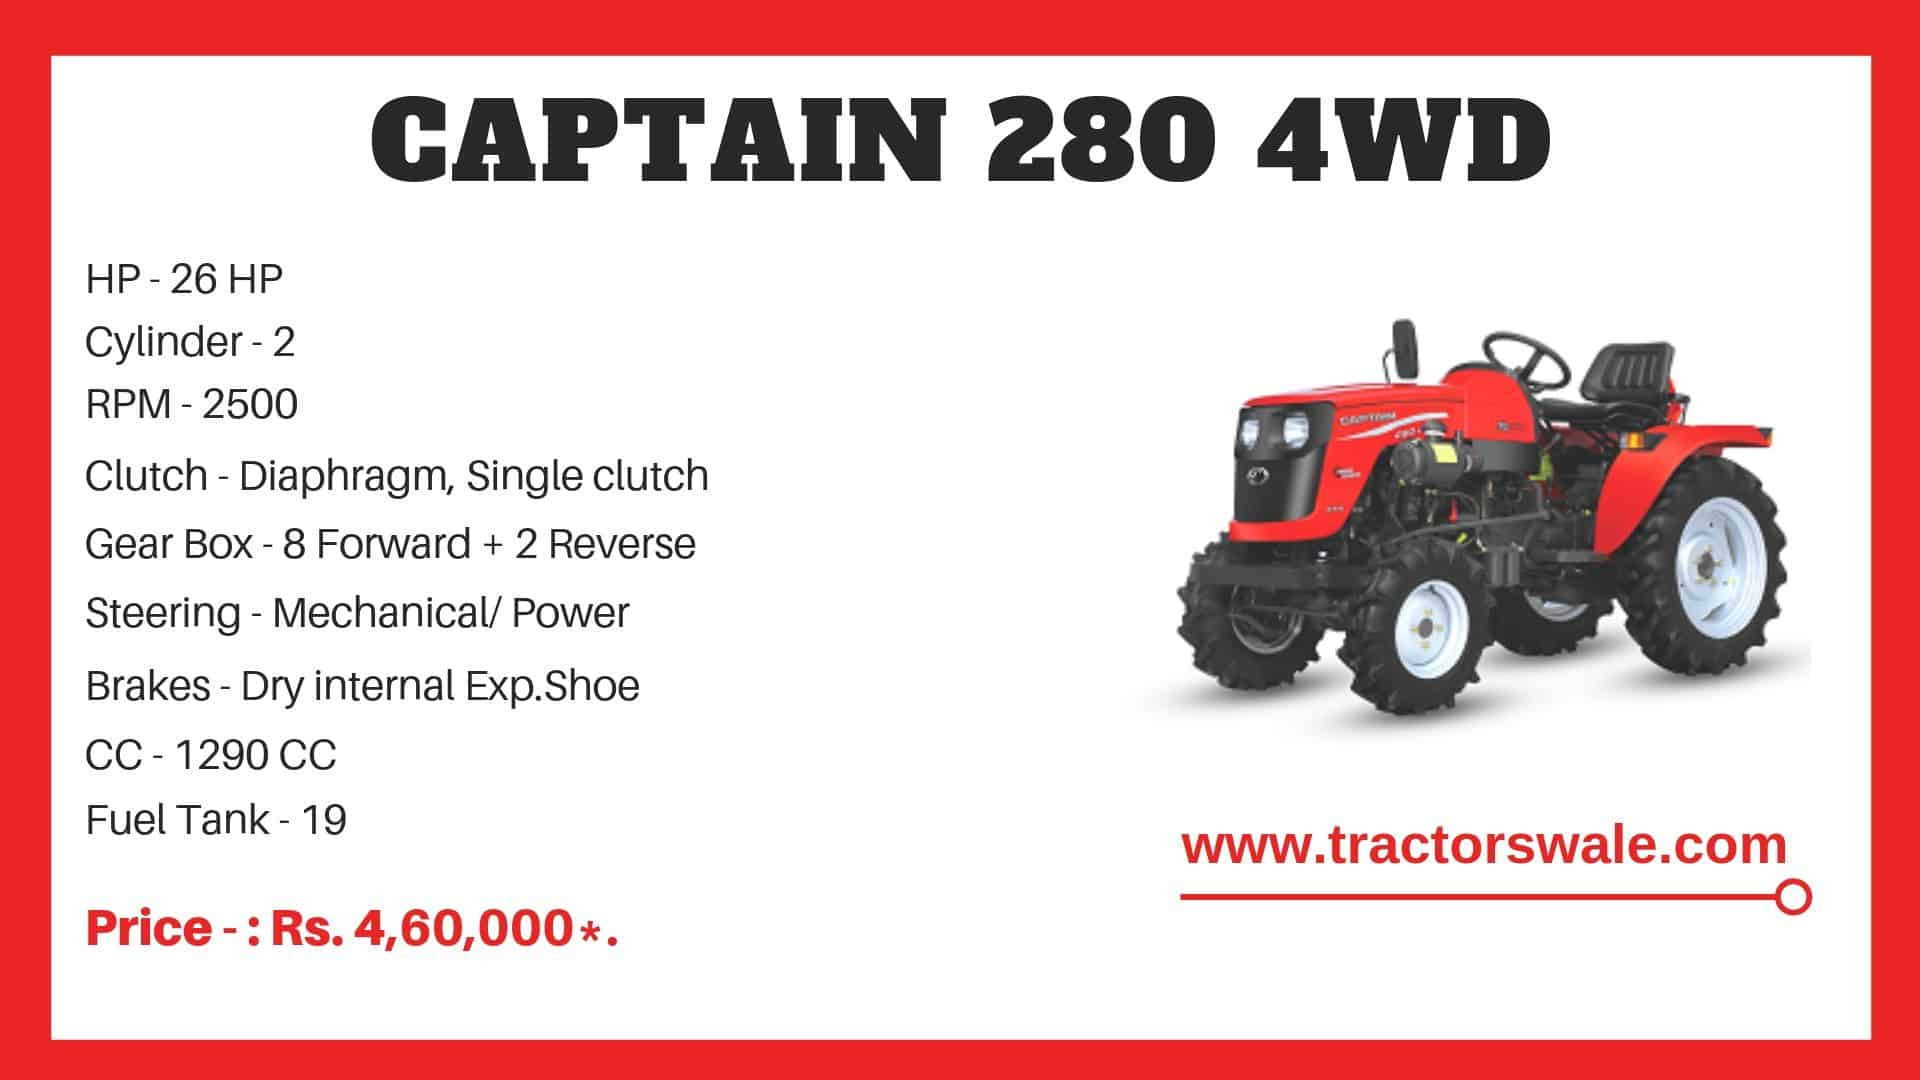 The Captain 280 4WD tractor Price in india is approx Rs.4,60,000*. [Ex.Show Room Price] Captain 280 Tractor Ex.Show Room Price in Gujarat: Rs.4,60,000*. Captain 280 Ex.Show Room Price in Rajsthan: Rs.4,60,000*. Price of Captain 280 Ex.Show Room in Punjab: Rs.4,60,000*. 26 HP Captain 280 Ex.Show Room Price in Maharashtra: Rs.4,60,000*. 280 Captain Ex.Show Room Price in Madhya Pradesh: Rs.4,60,000*.